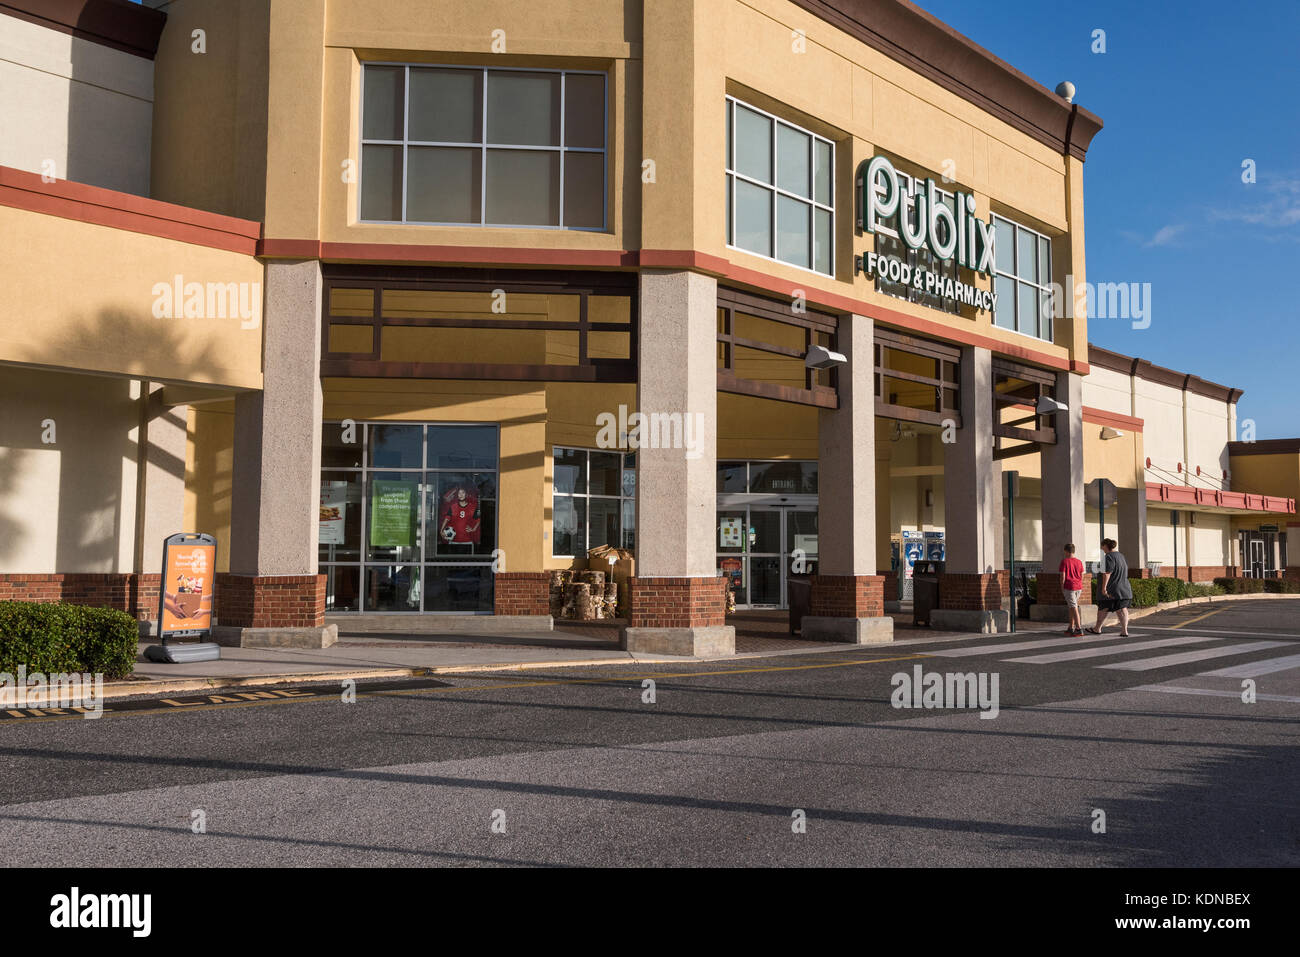 Publix Grocery Store Employee Stock Photos & Publix Grocery Store ...